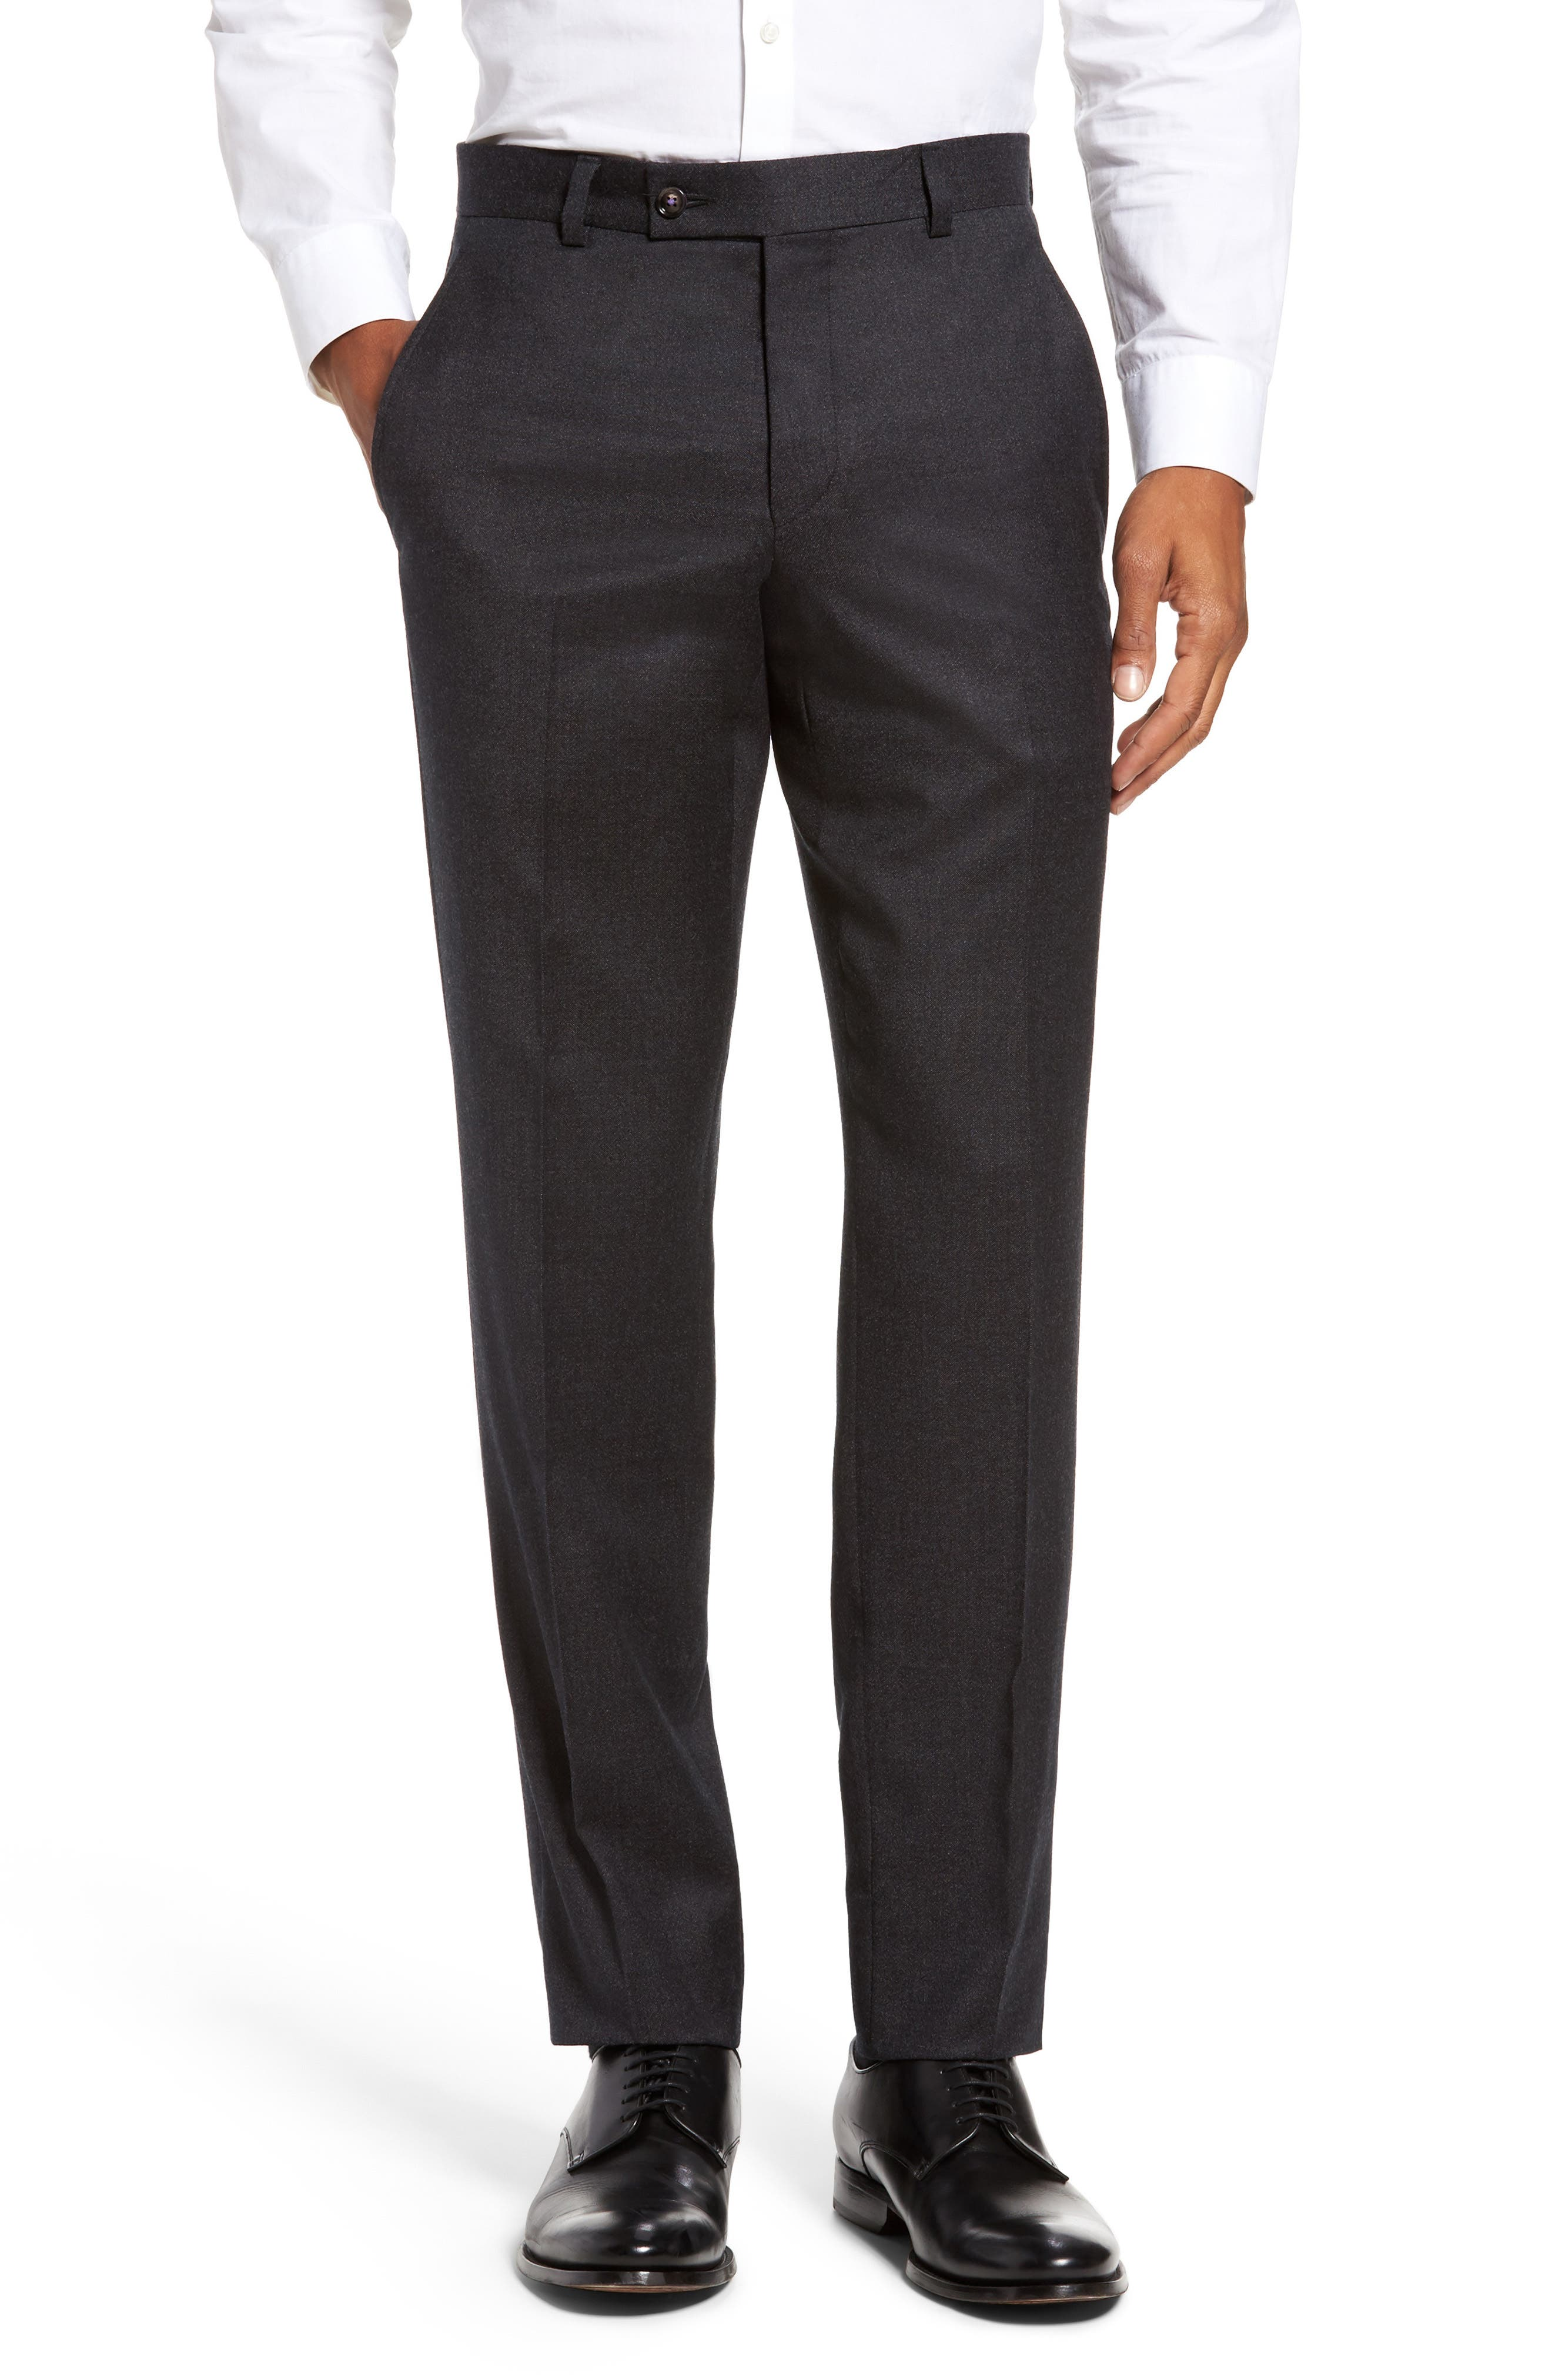 Jeremy Flat Front Solid Wool Trousers,                             Main thumbnail 1, color,                             050